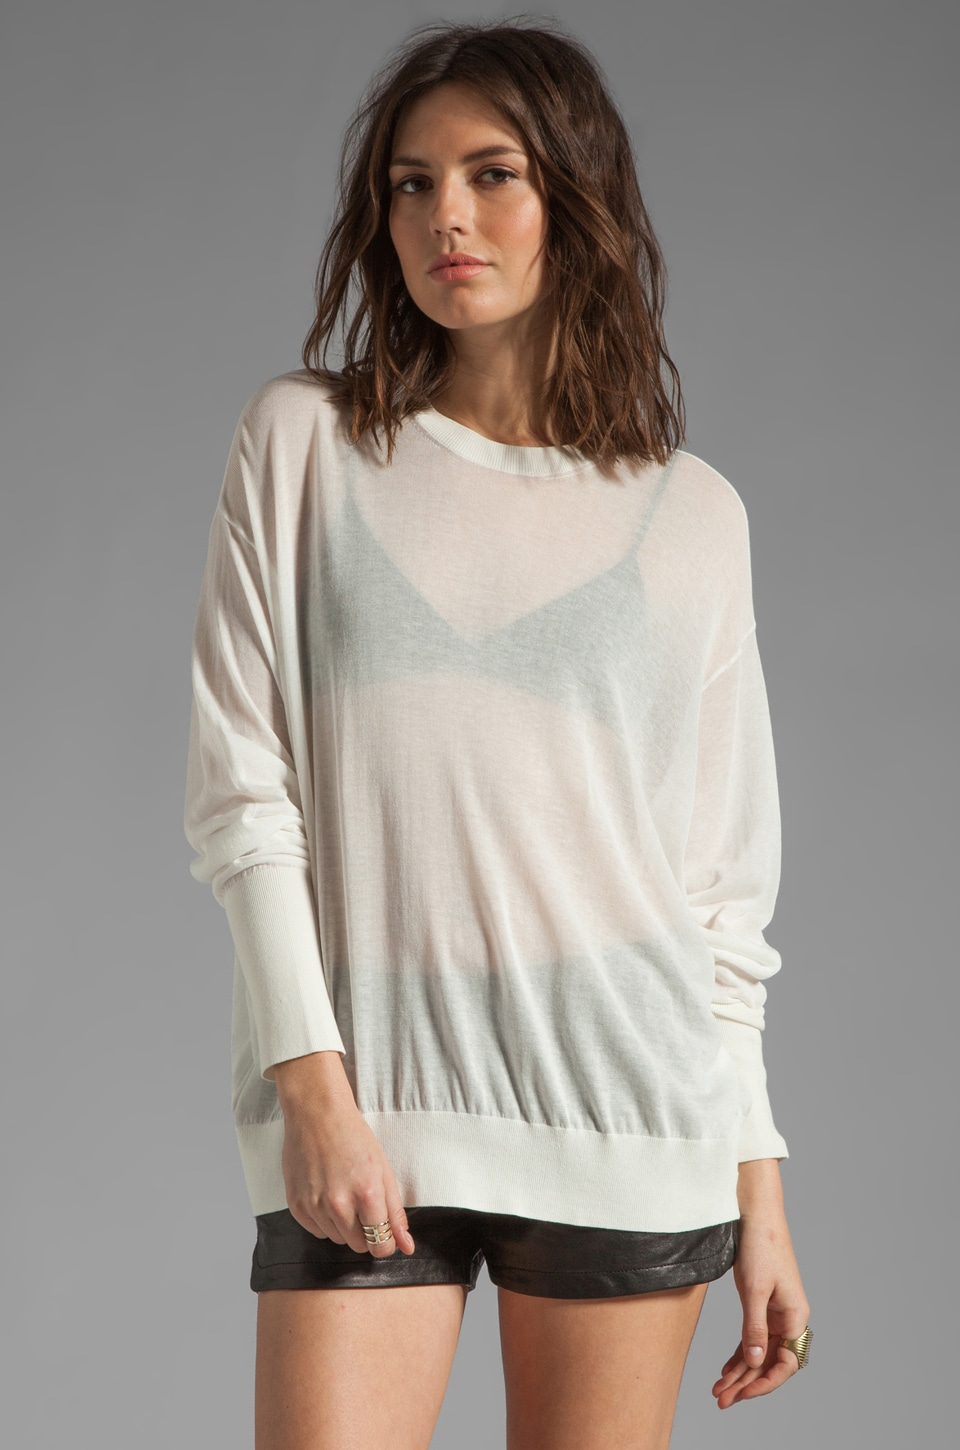 T by Alexander Wang Sheer Loose Knit Crew Neck Pullover in White